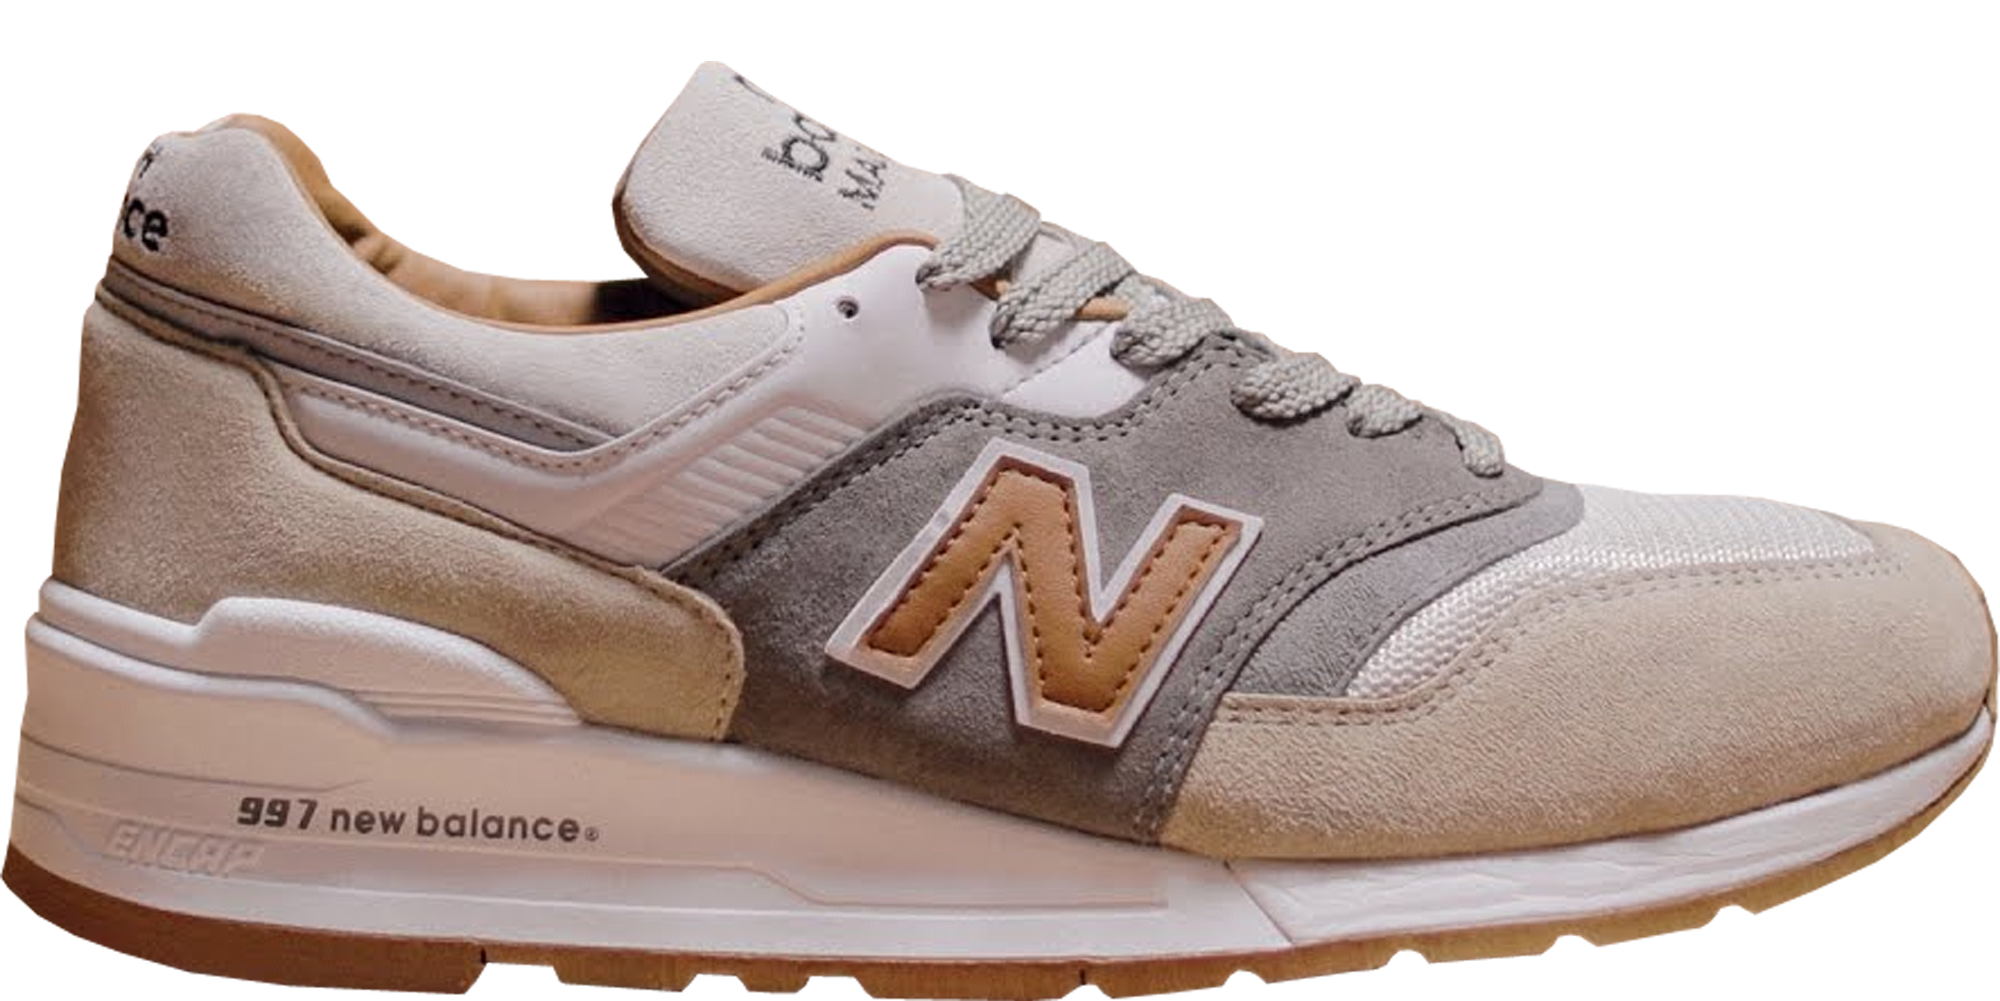 the latest b7984 bf86c J. Crew x New Balance 997 Cortado - StockX News